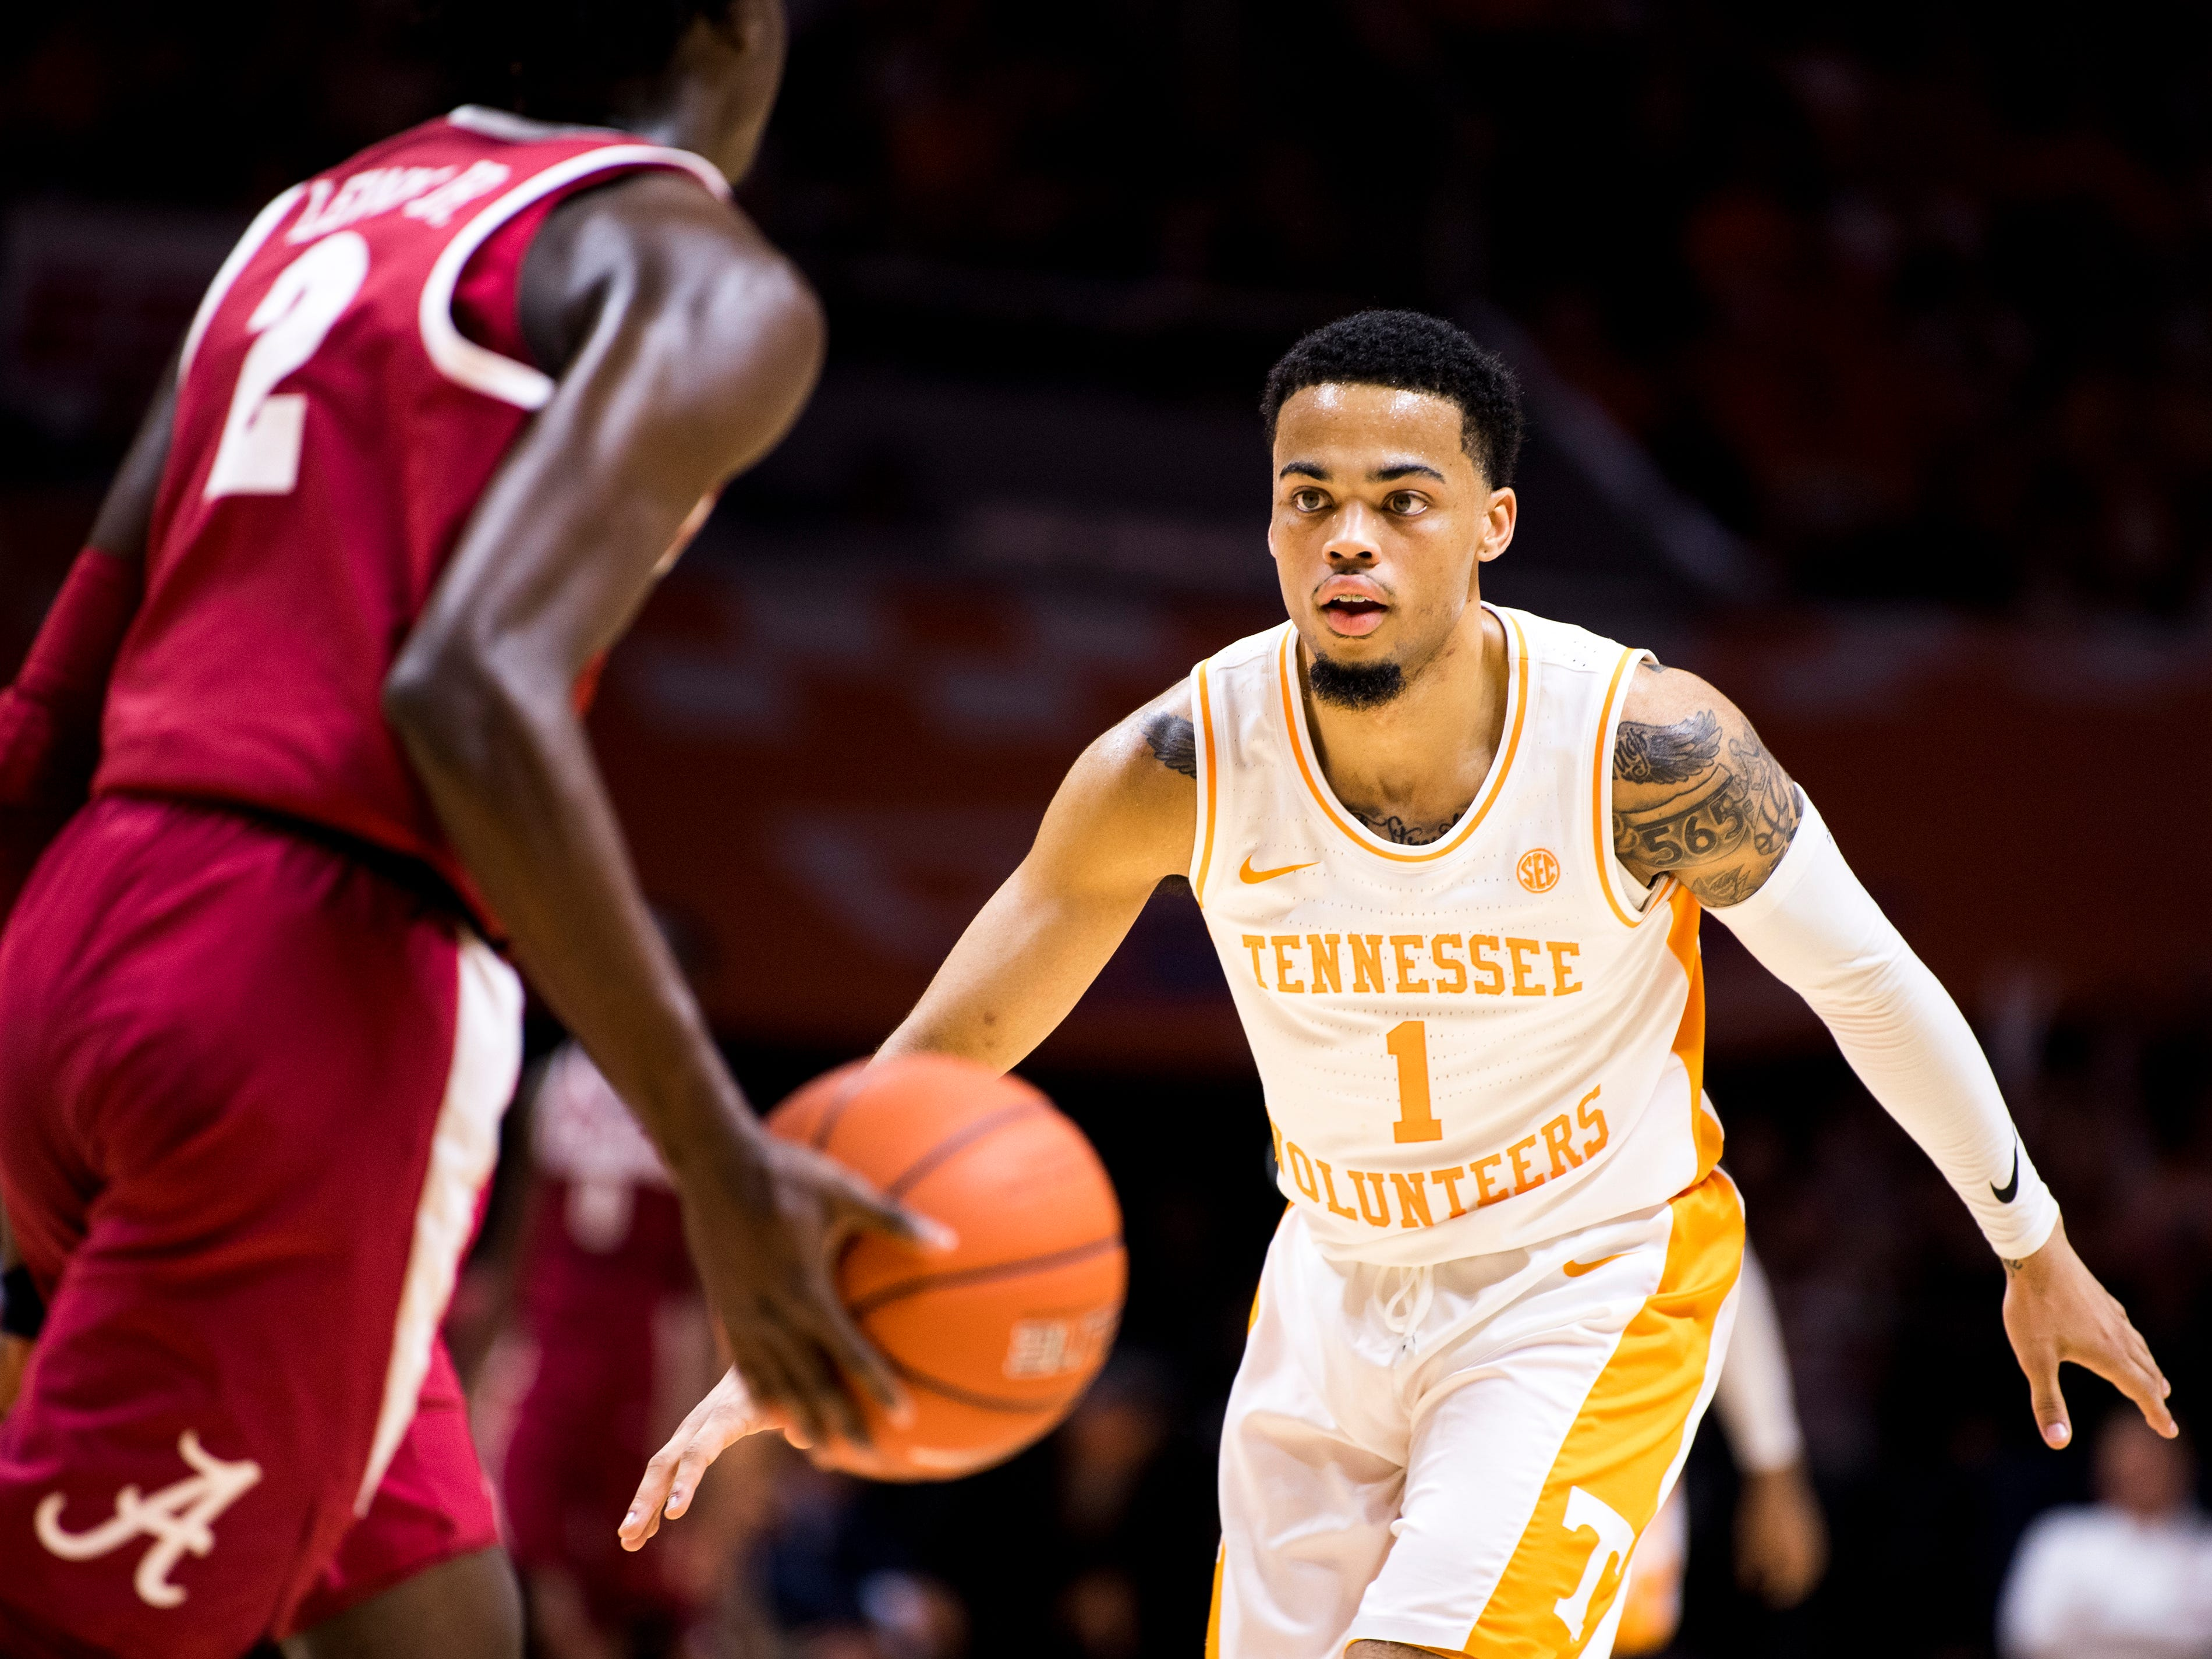 Tennessee guard Lamonte Turner (1) during the second half of Tennessee's home SEC conference game against Alabama at Thompson-Boling Arena in Knoxville on Saturday, January 19, 2019.